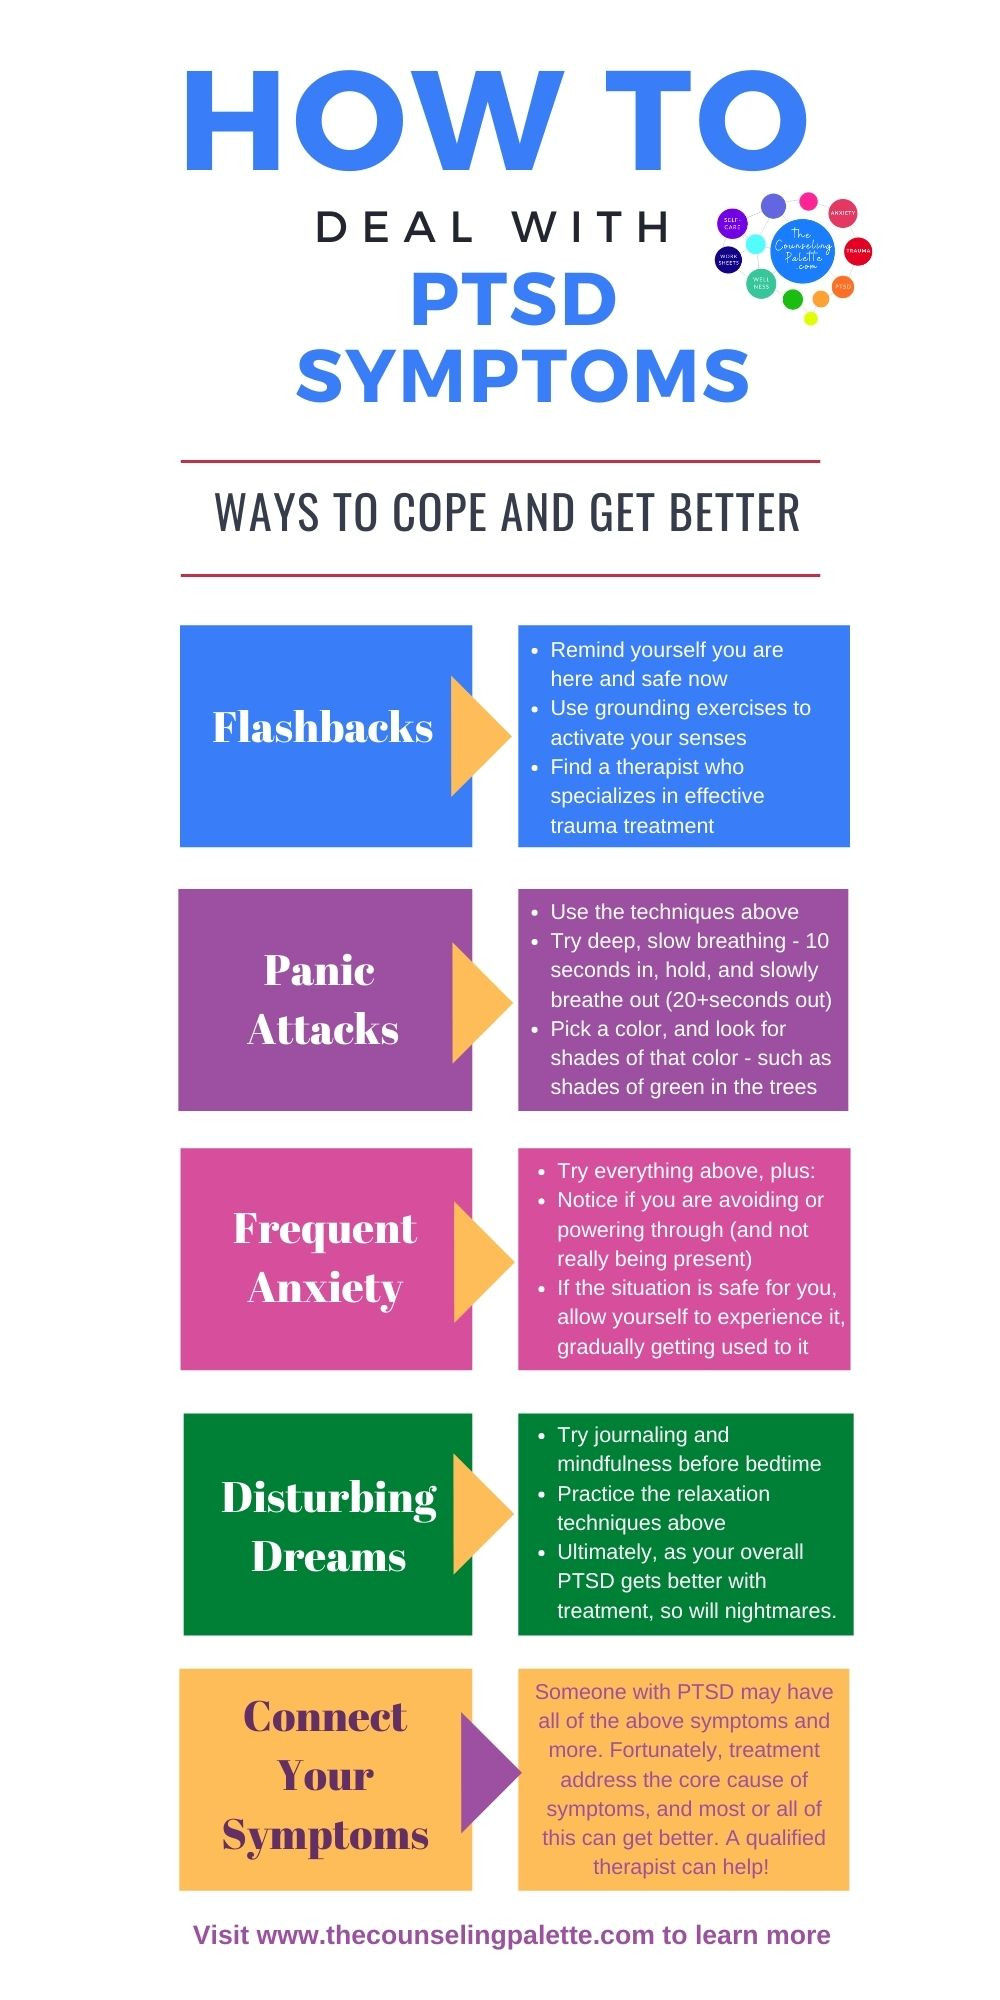 Infographic covers how to counter symptoms following trauma. It includes tips for managing anxiety and other symptoms, and how to ultimately get better. Details are also described in the article.